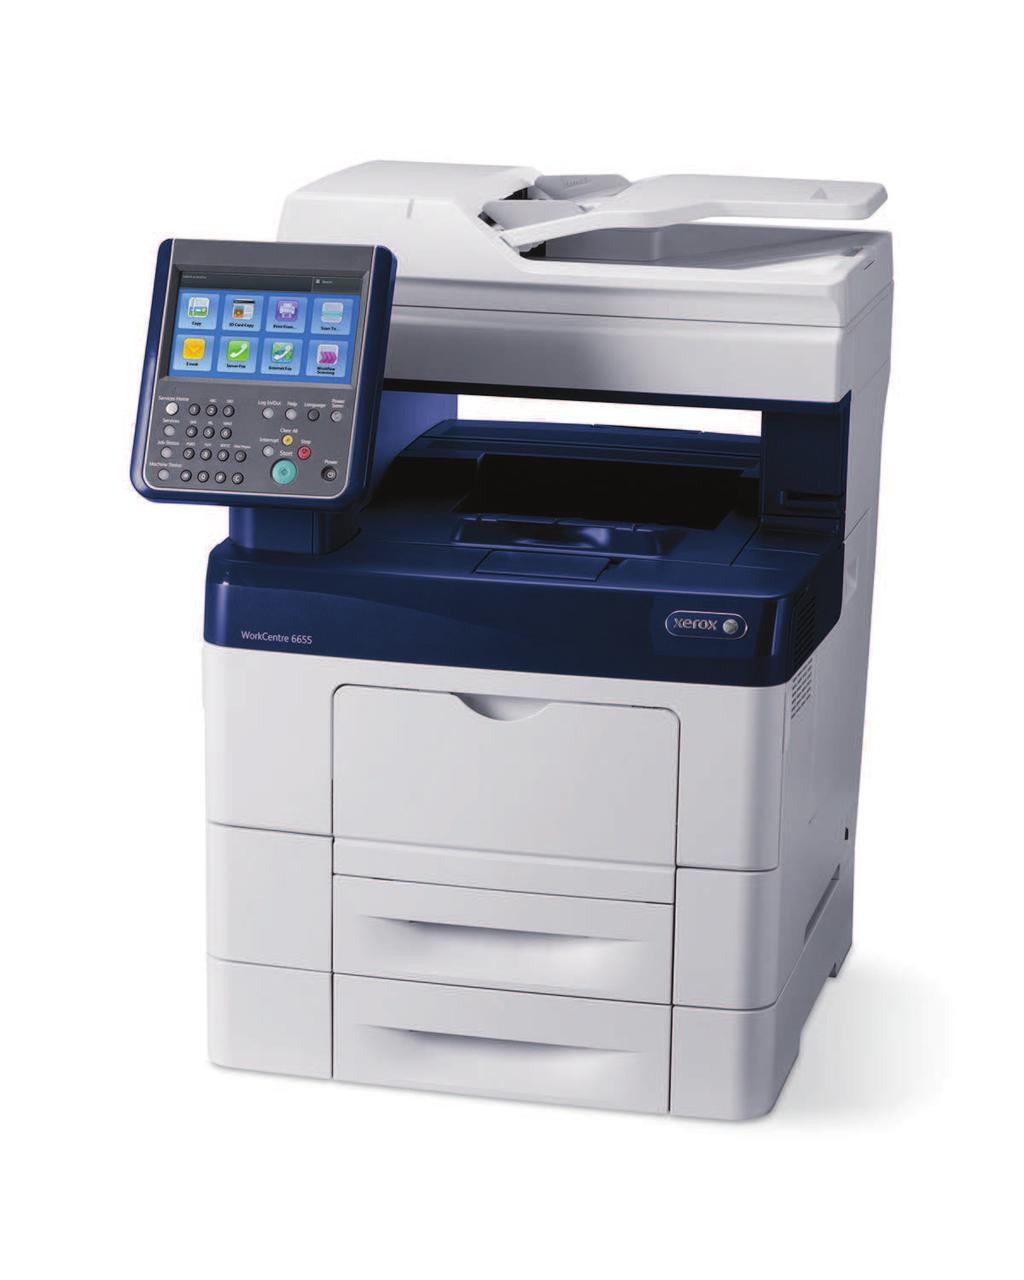 WorkCentre 6655 Color Multifunction Printer